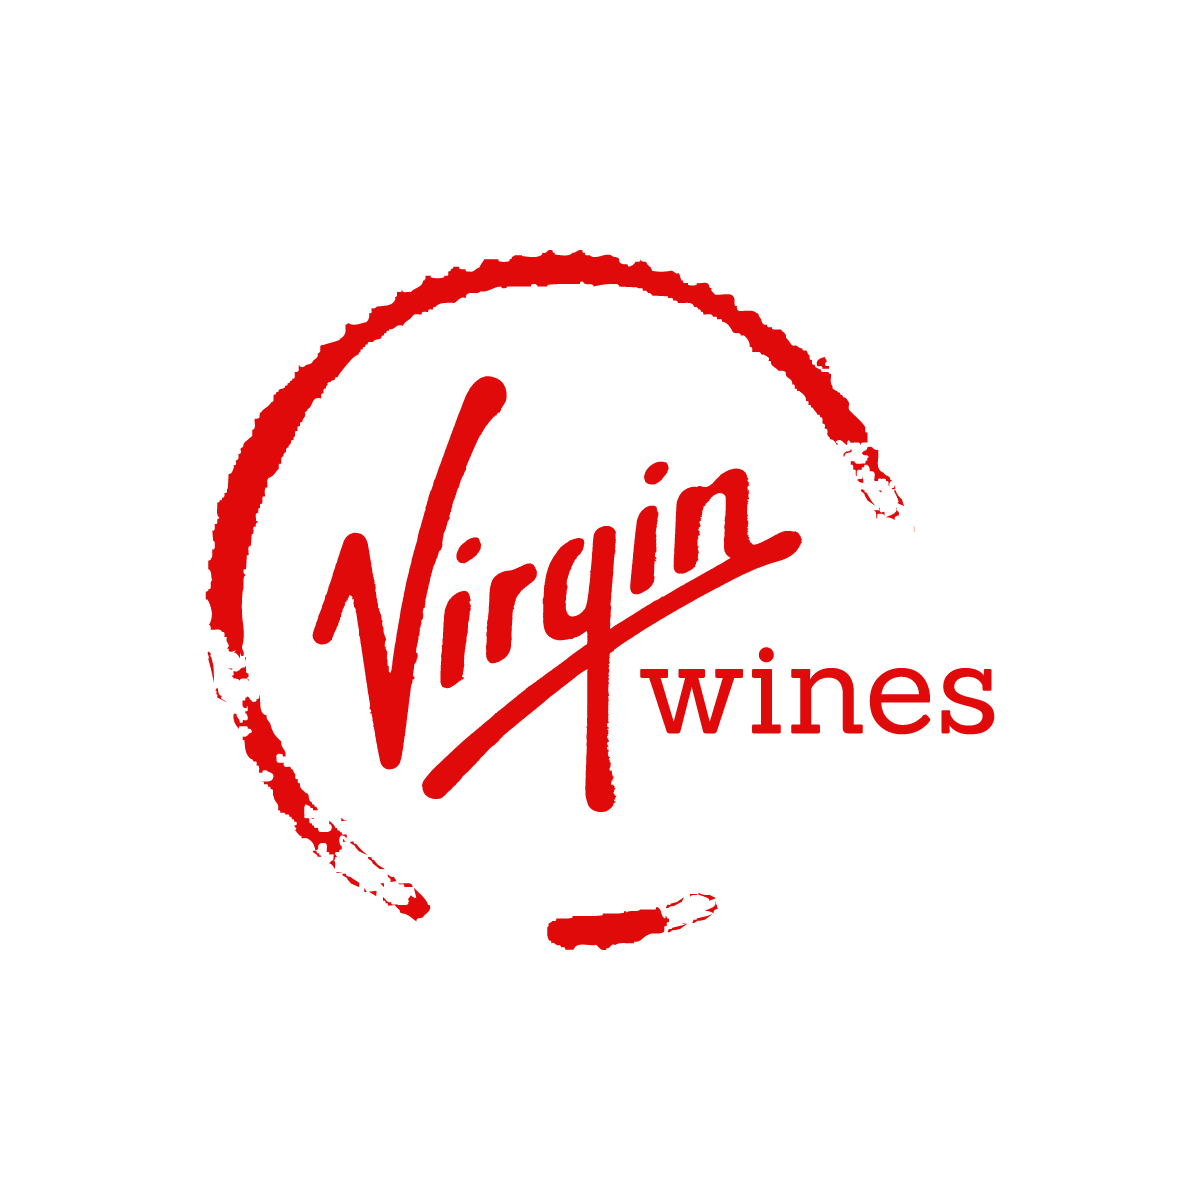 Virgin Wines UK logo